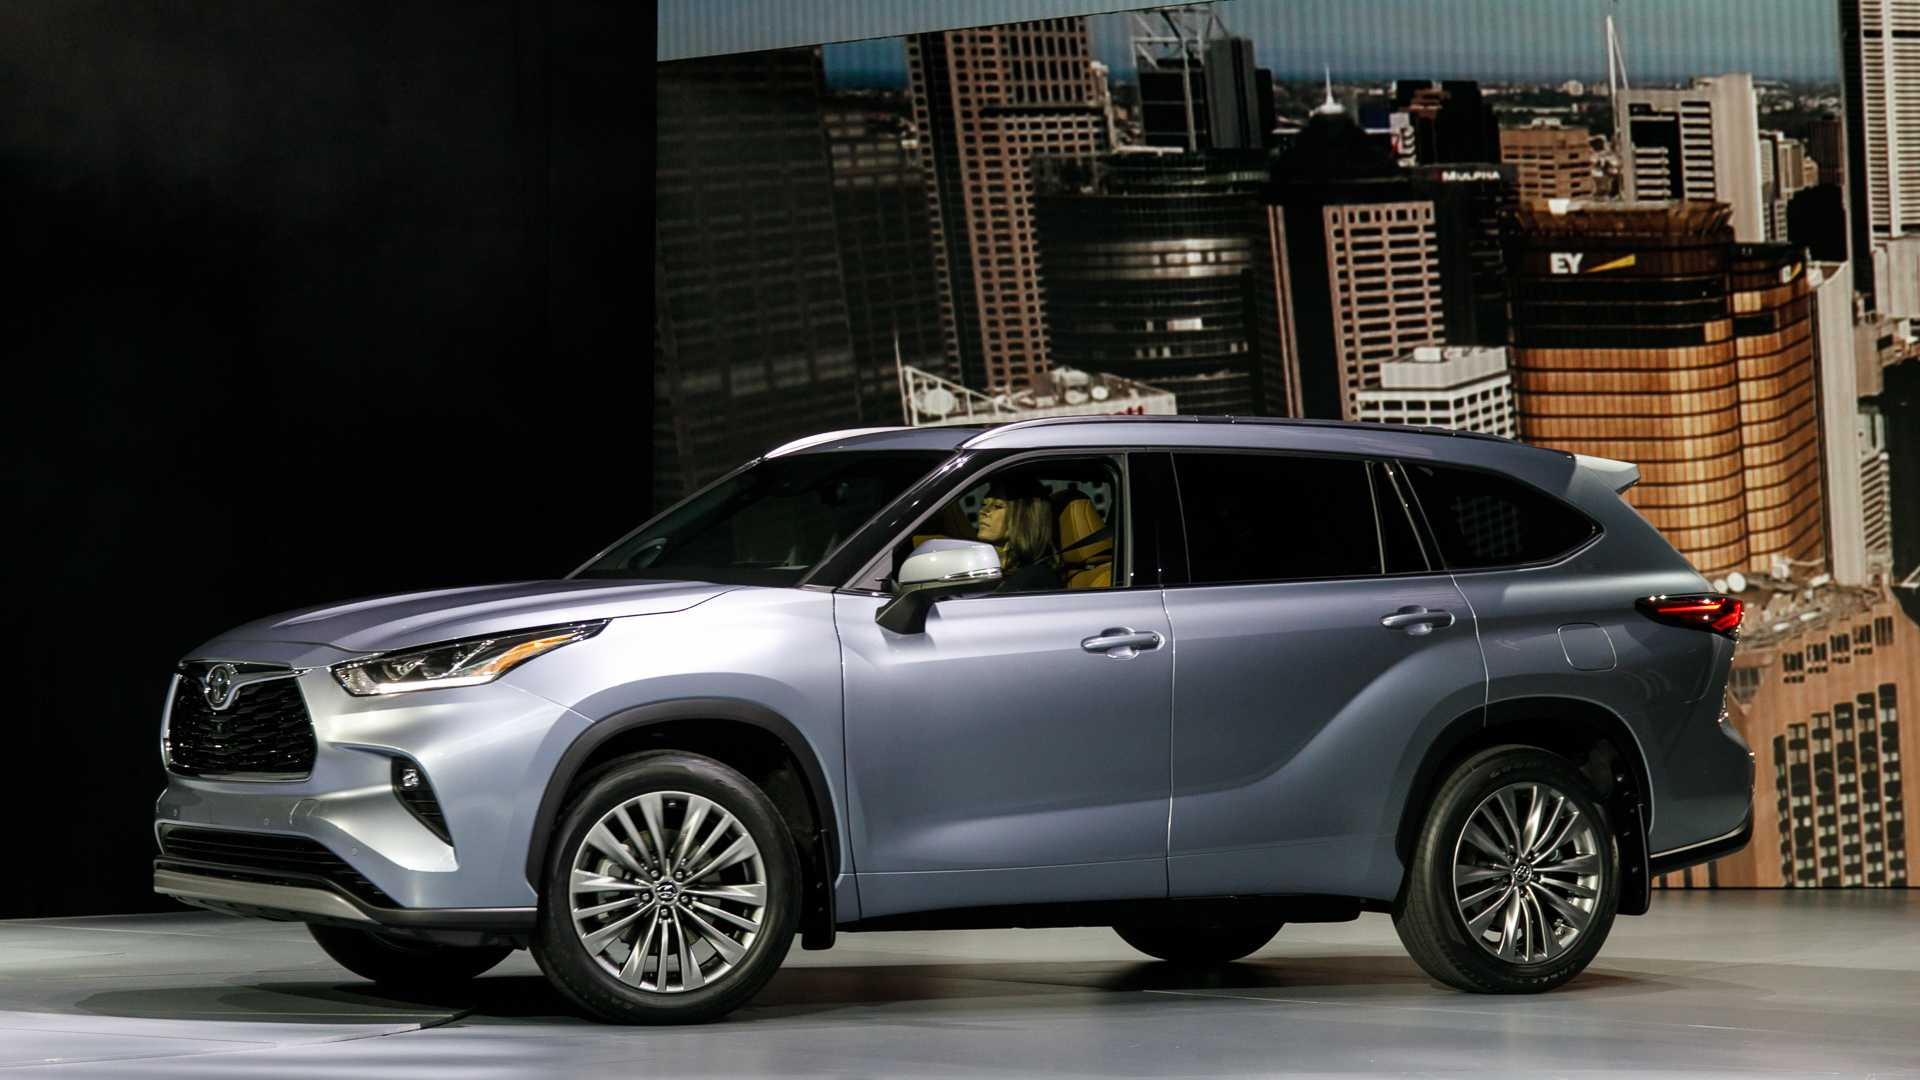 85 The Best 2020 Toyota Highlander Reviews